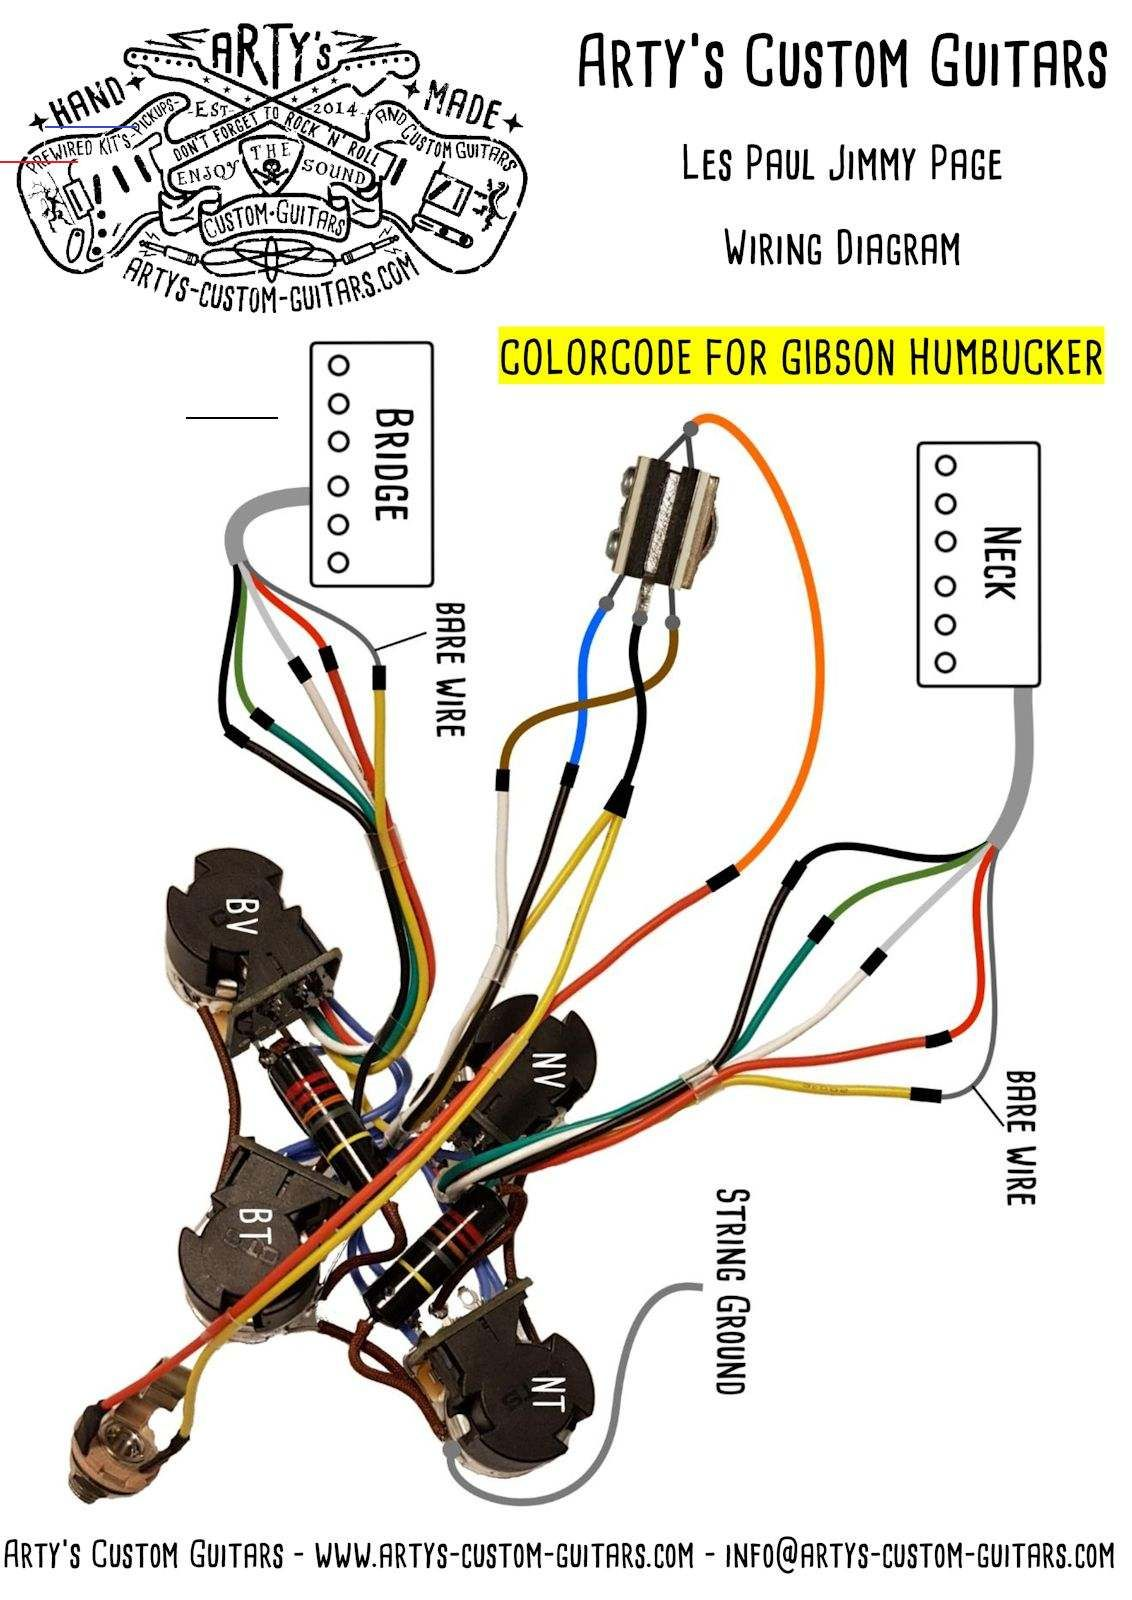 Wiring Harness Les Paul Jimmy Page Customguitars This Prewired Harness Leaves Absolutely Nothing To Be Desired The Circuit Became Famous By The Guitar God I 2020